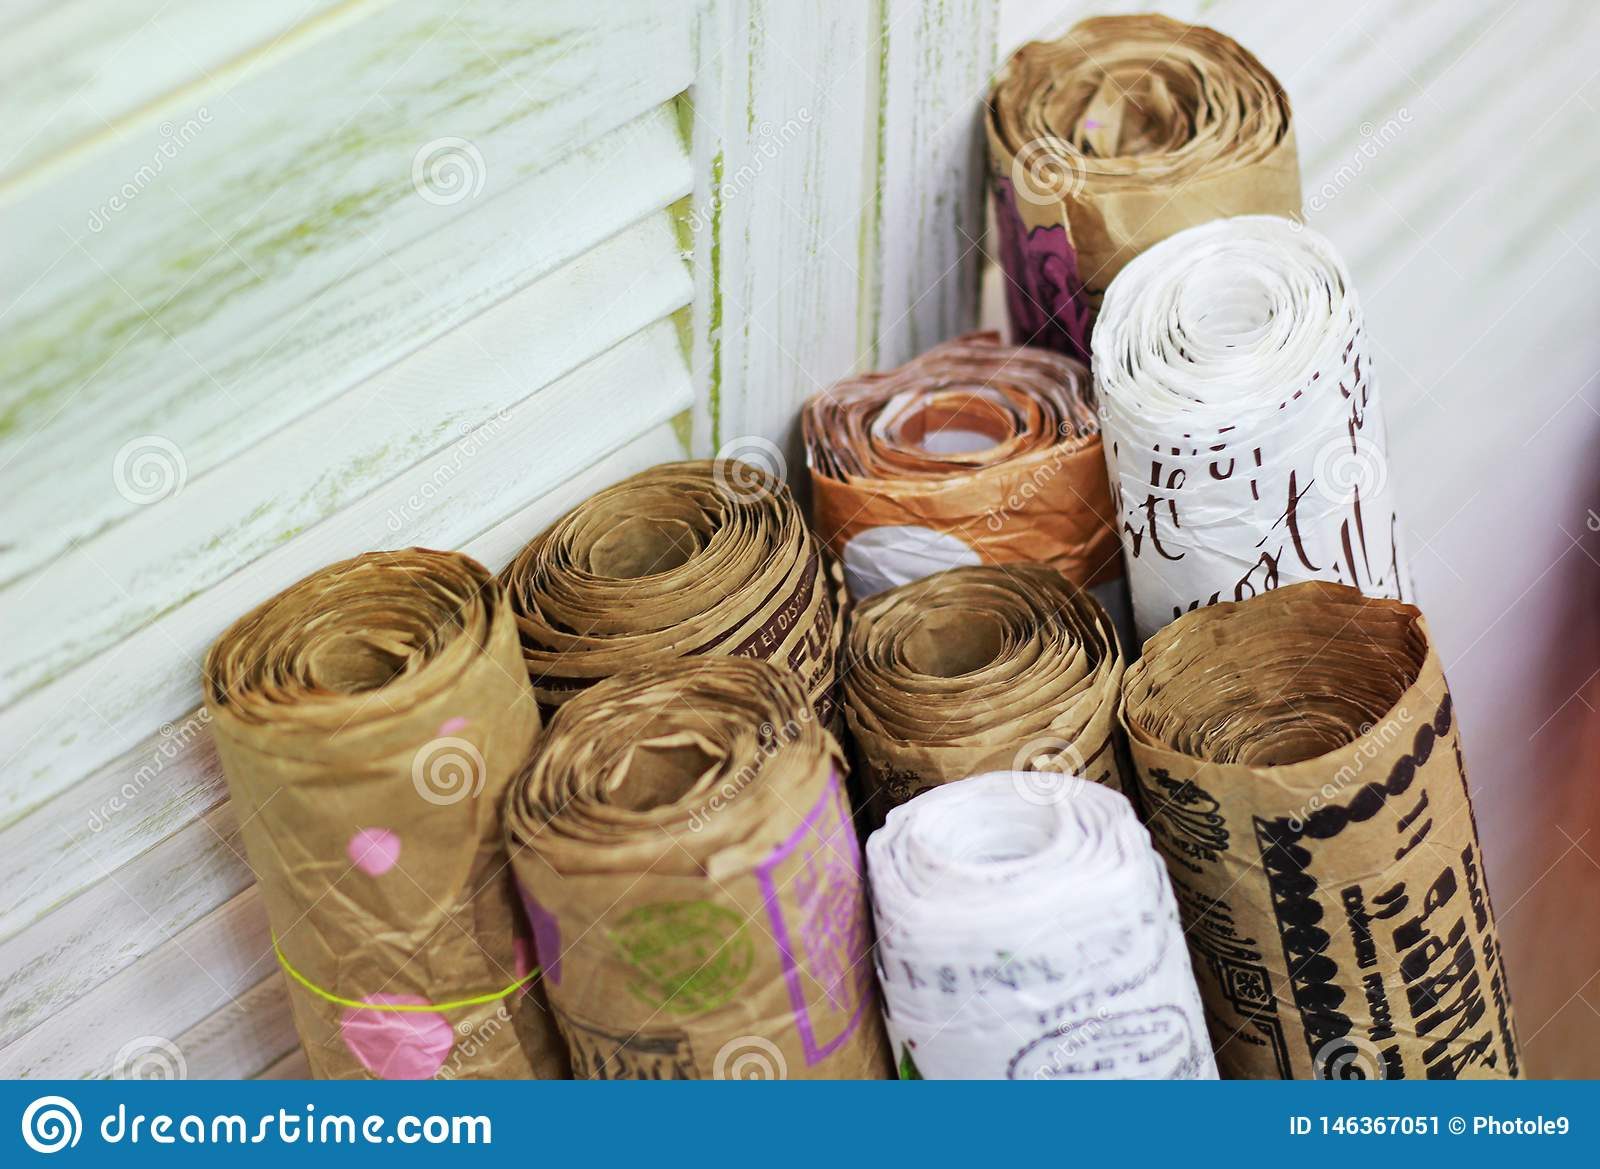 Kraft paper rolls with vintage bag for gift wrapping